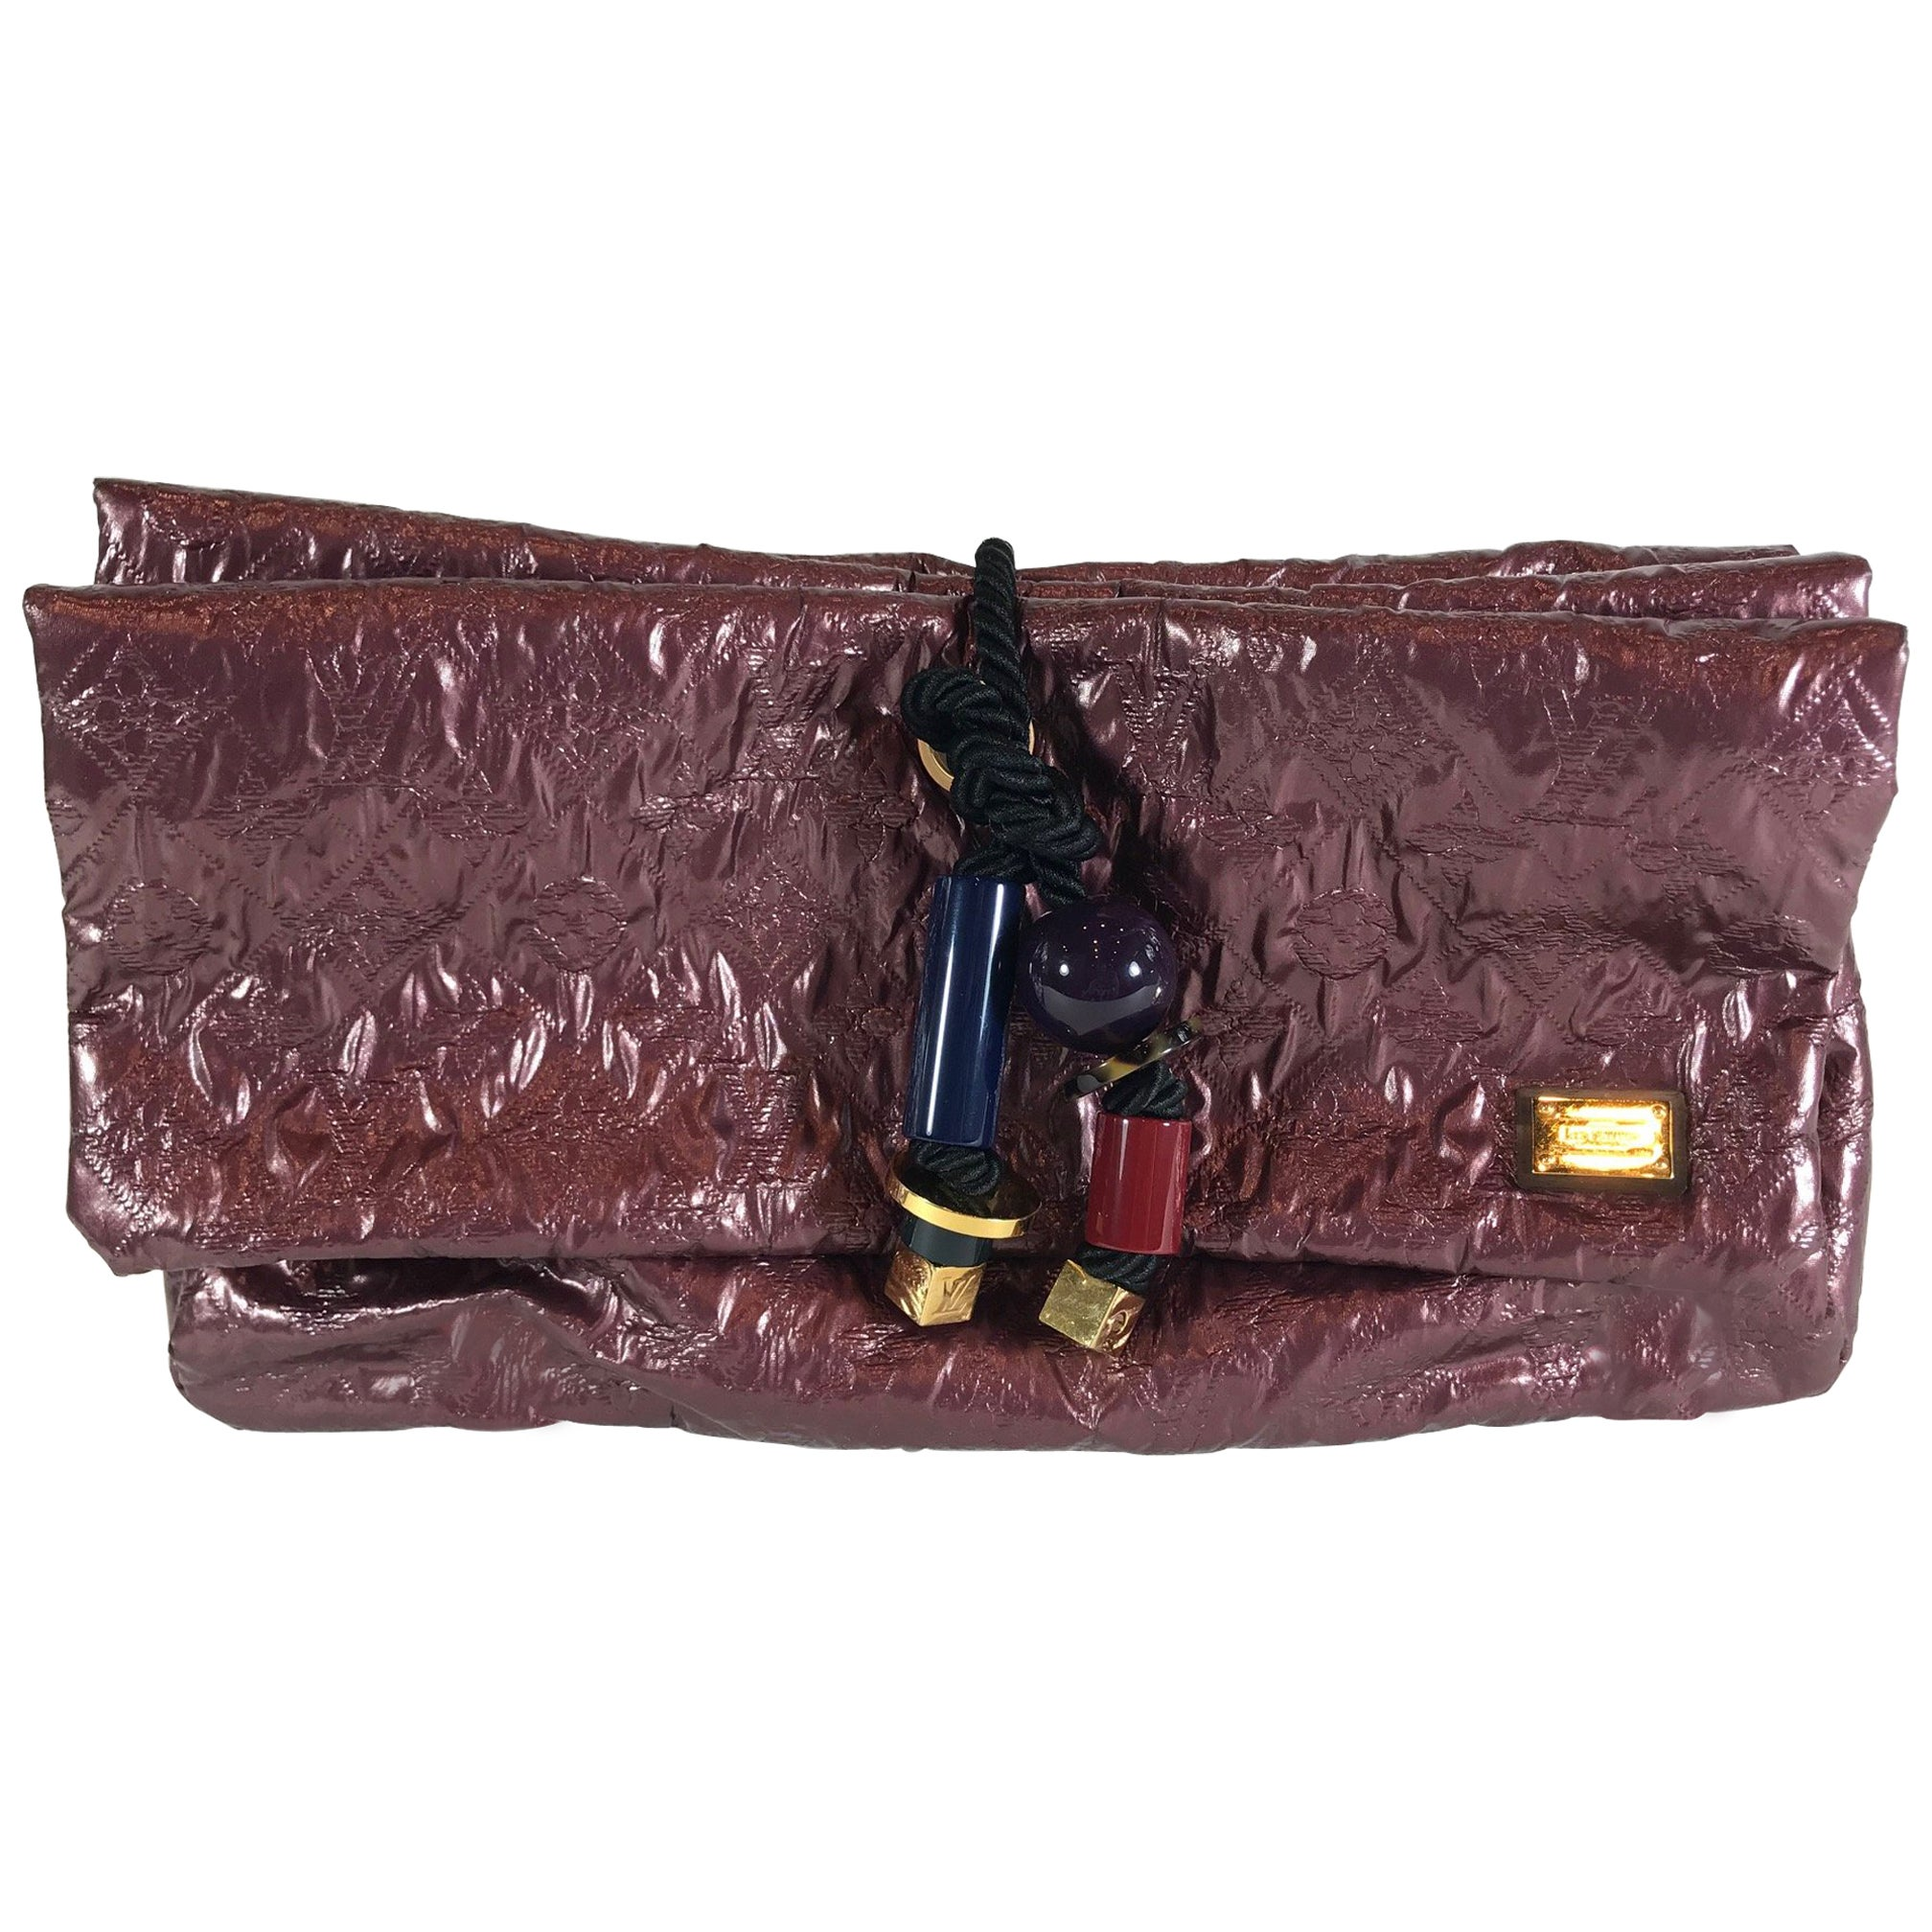 869ab5d1e2e4 Louis Vuitton Limited Edition Limelight African Queen Clutch For Sale at  1stdibs